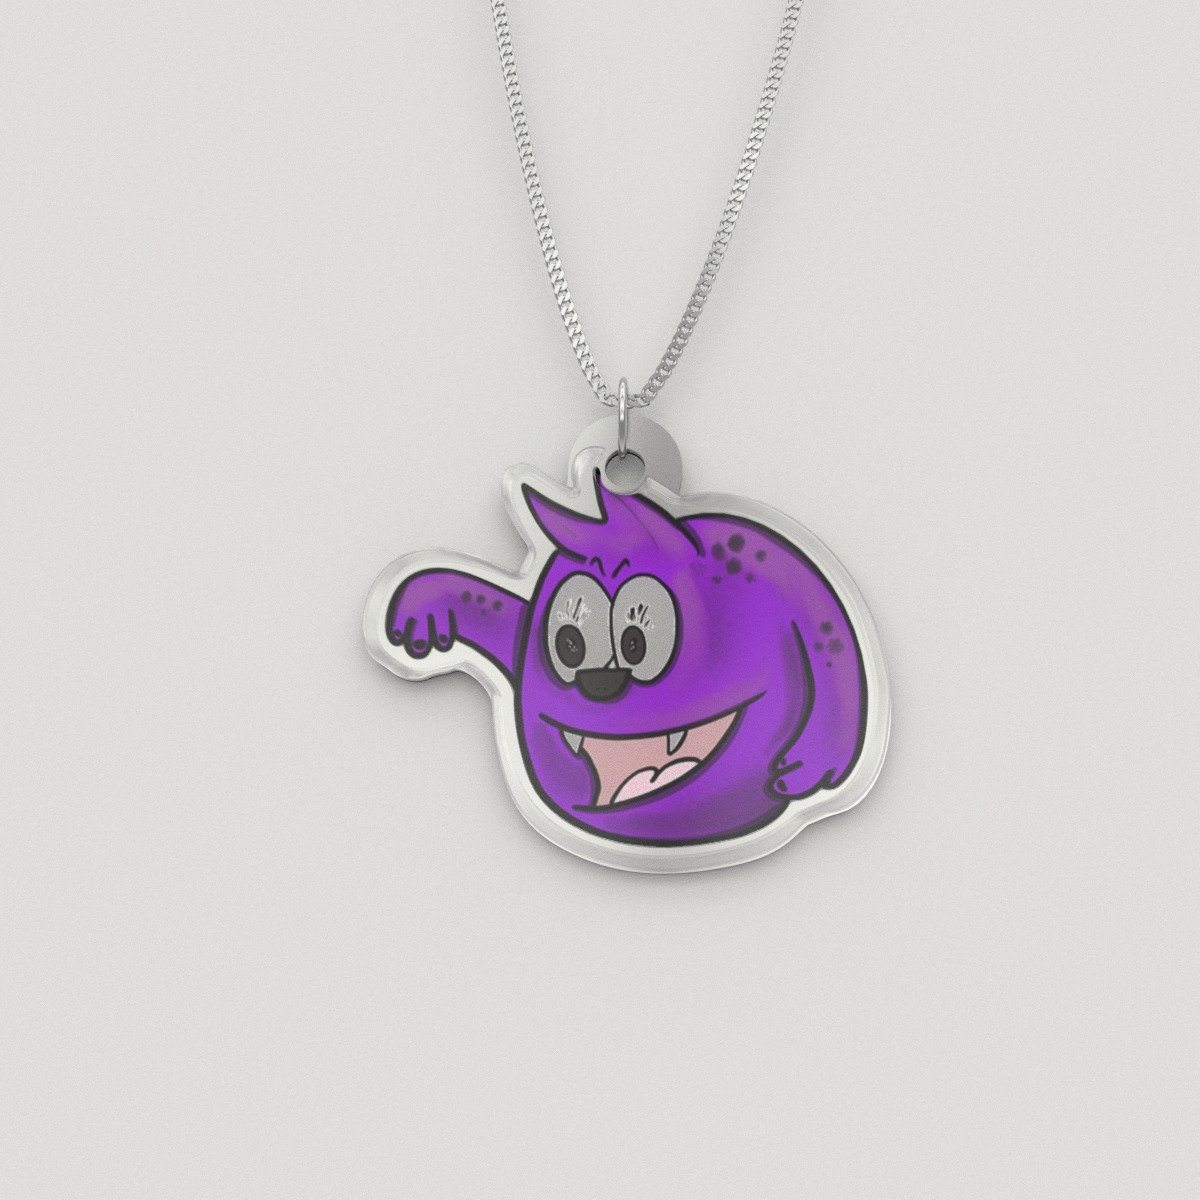 Pendant - Penny The Chronic Pain Monster Silver Necklace